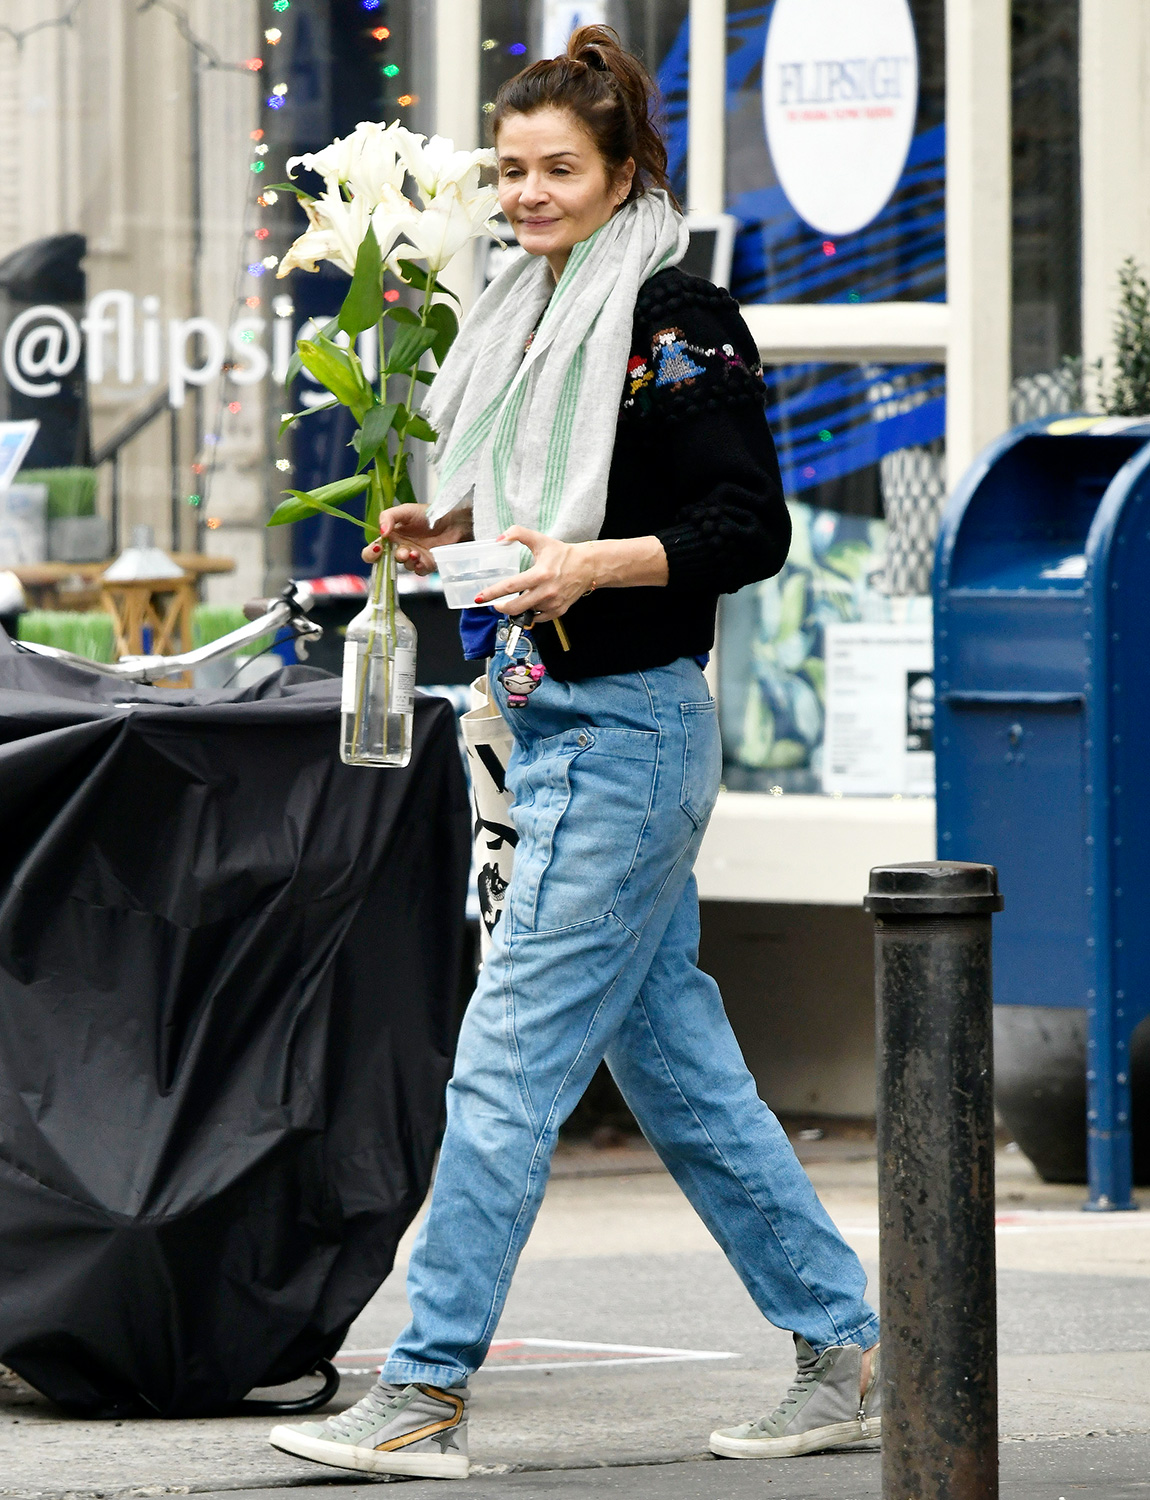 Helena Christensen Carries Fresh Cut Flowers While Out in New York City.